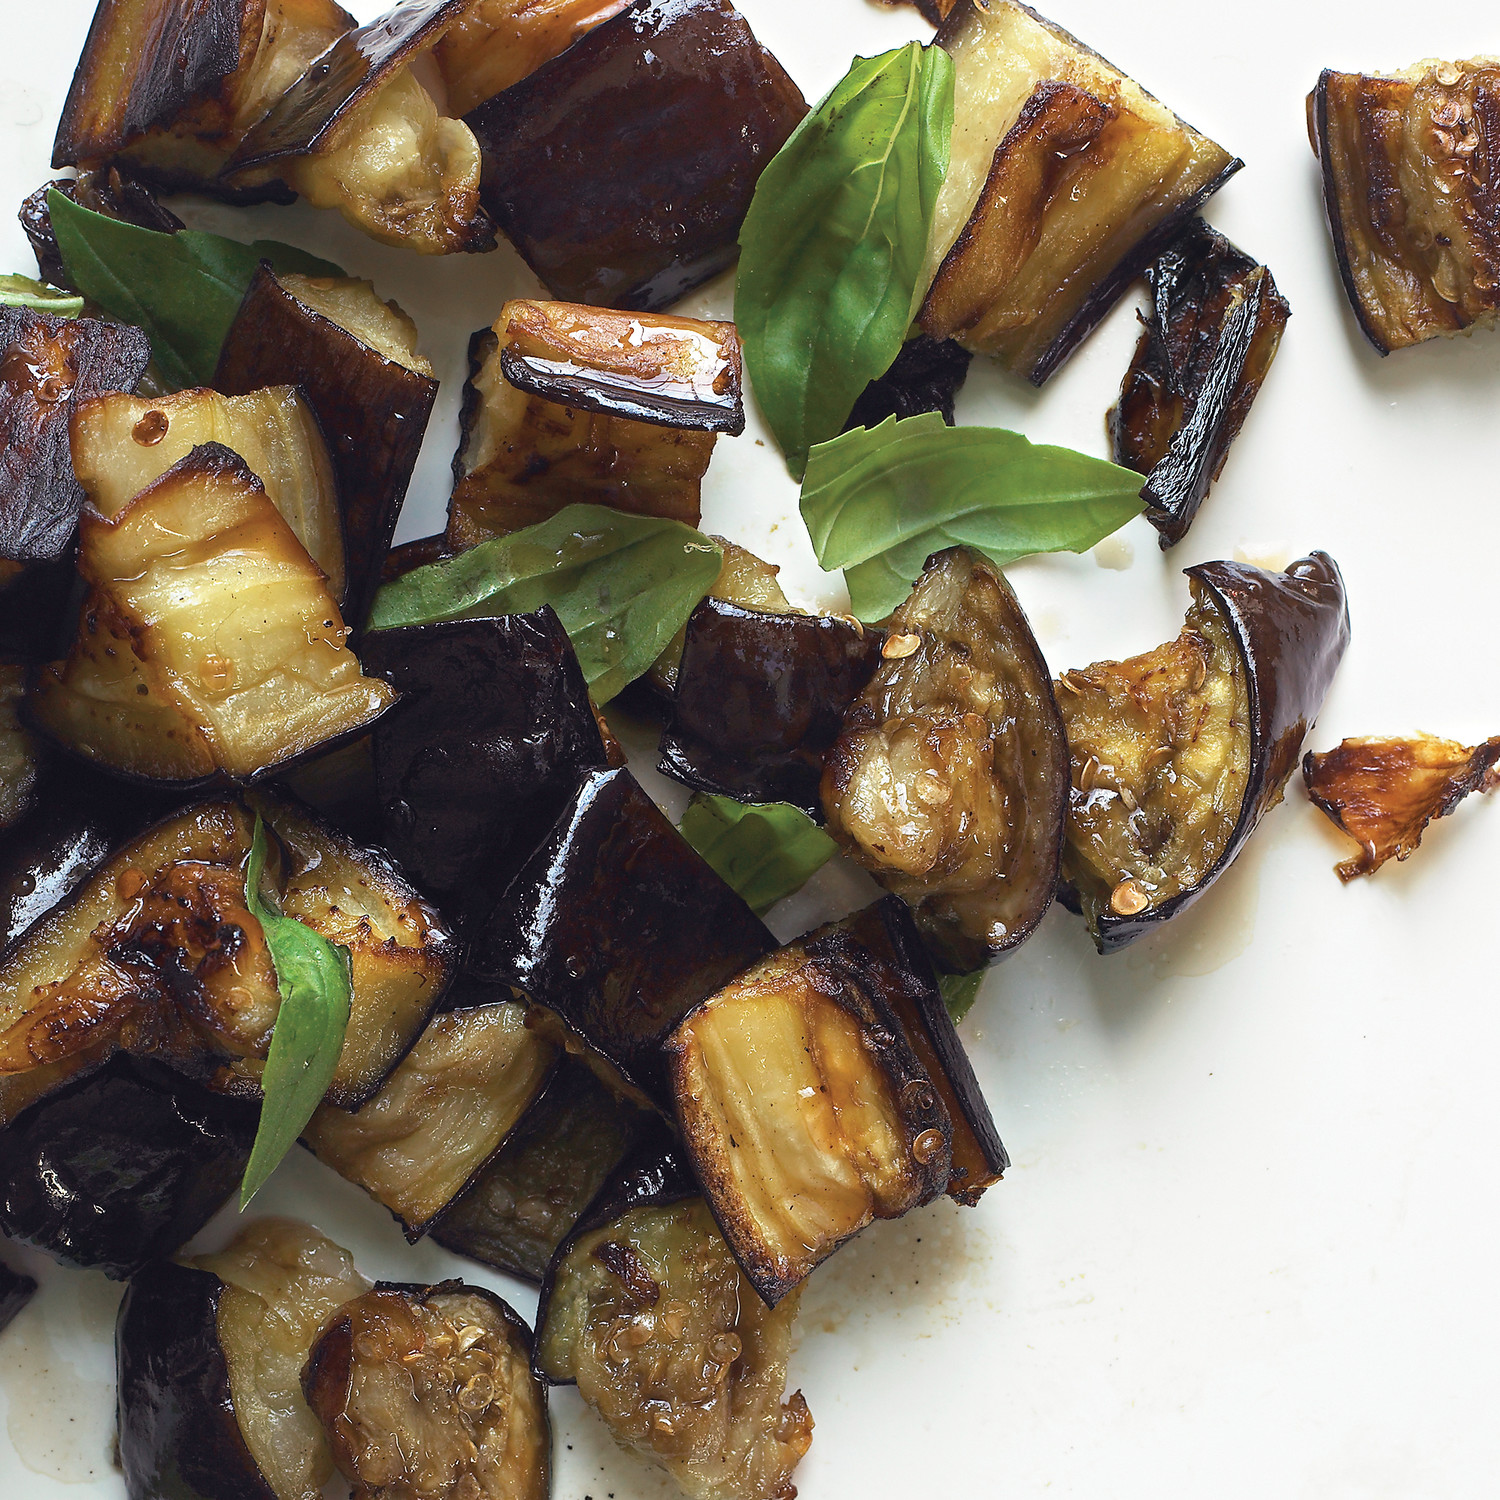 roasted eggplant side dish